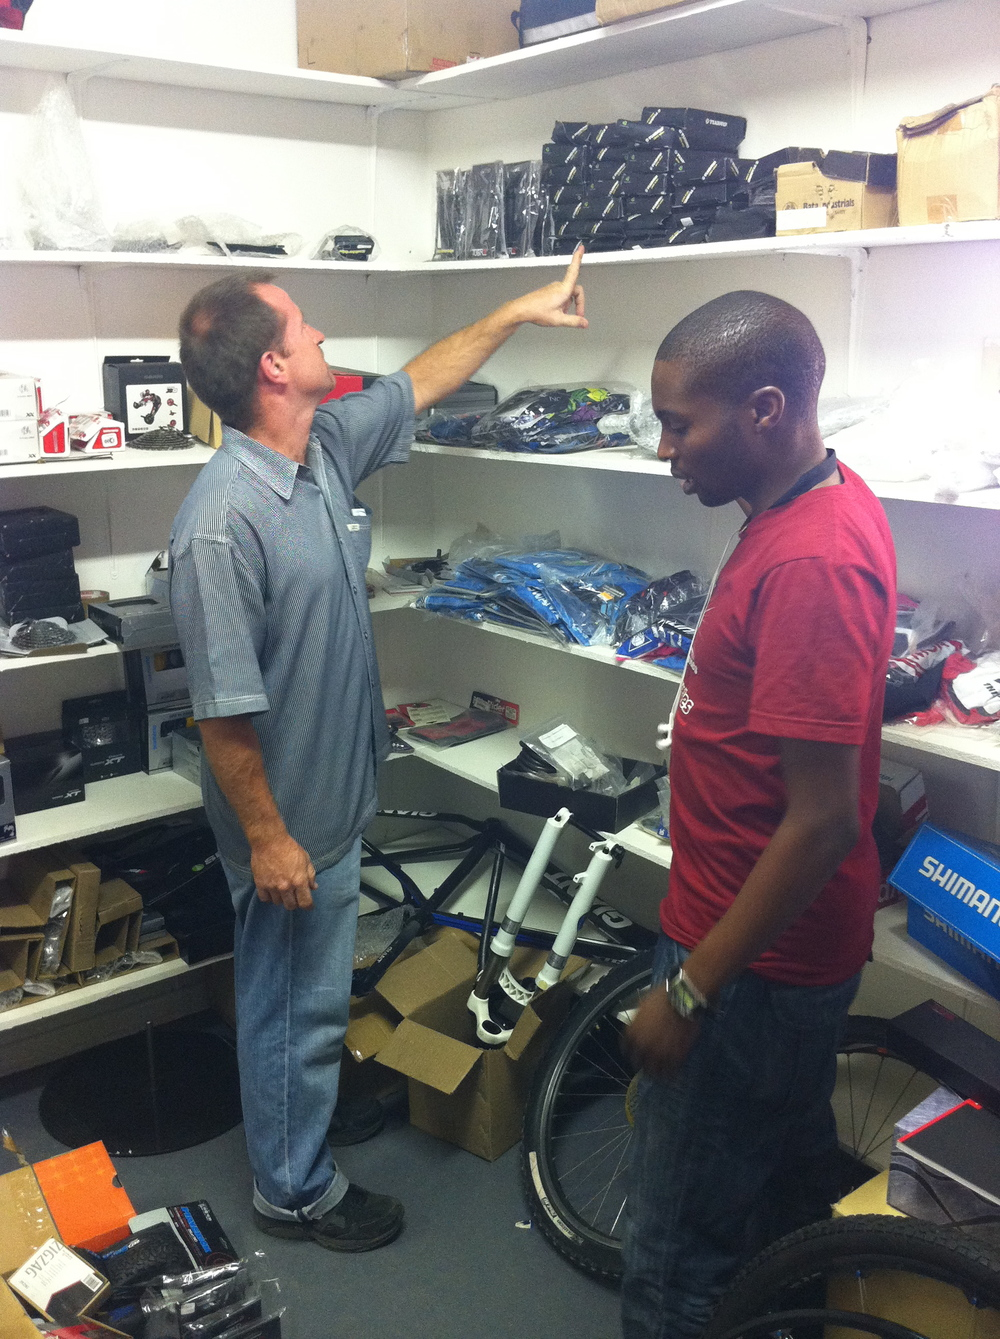 Milton shopping for spare parts with Rob